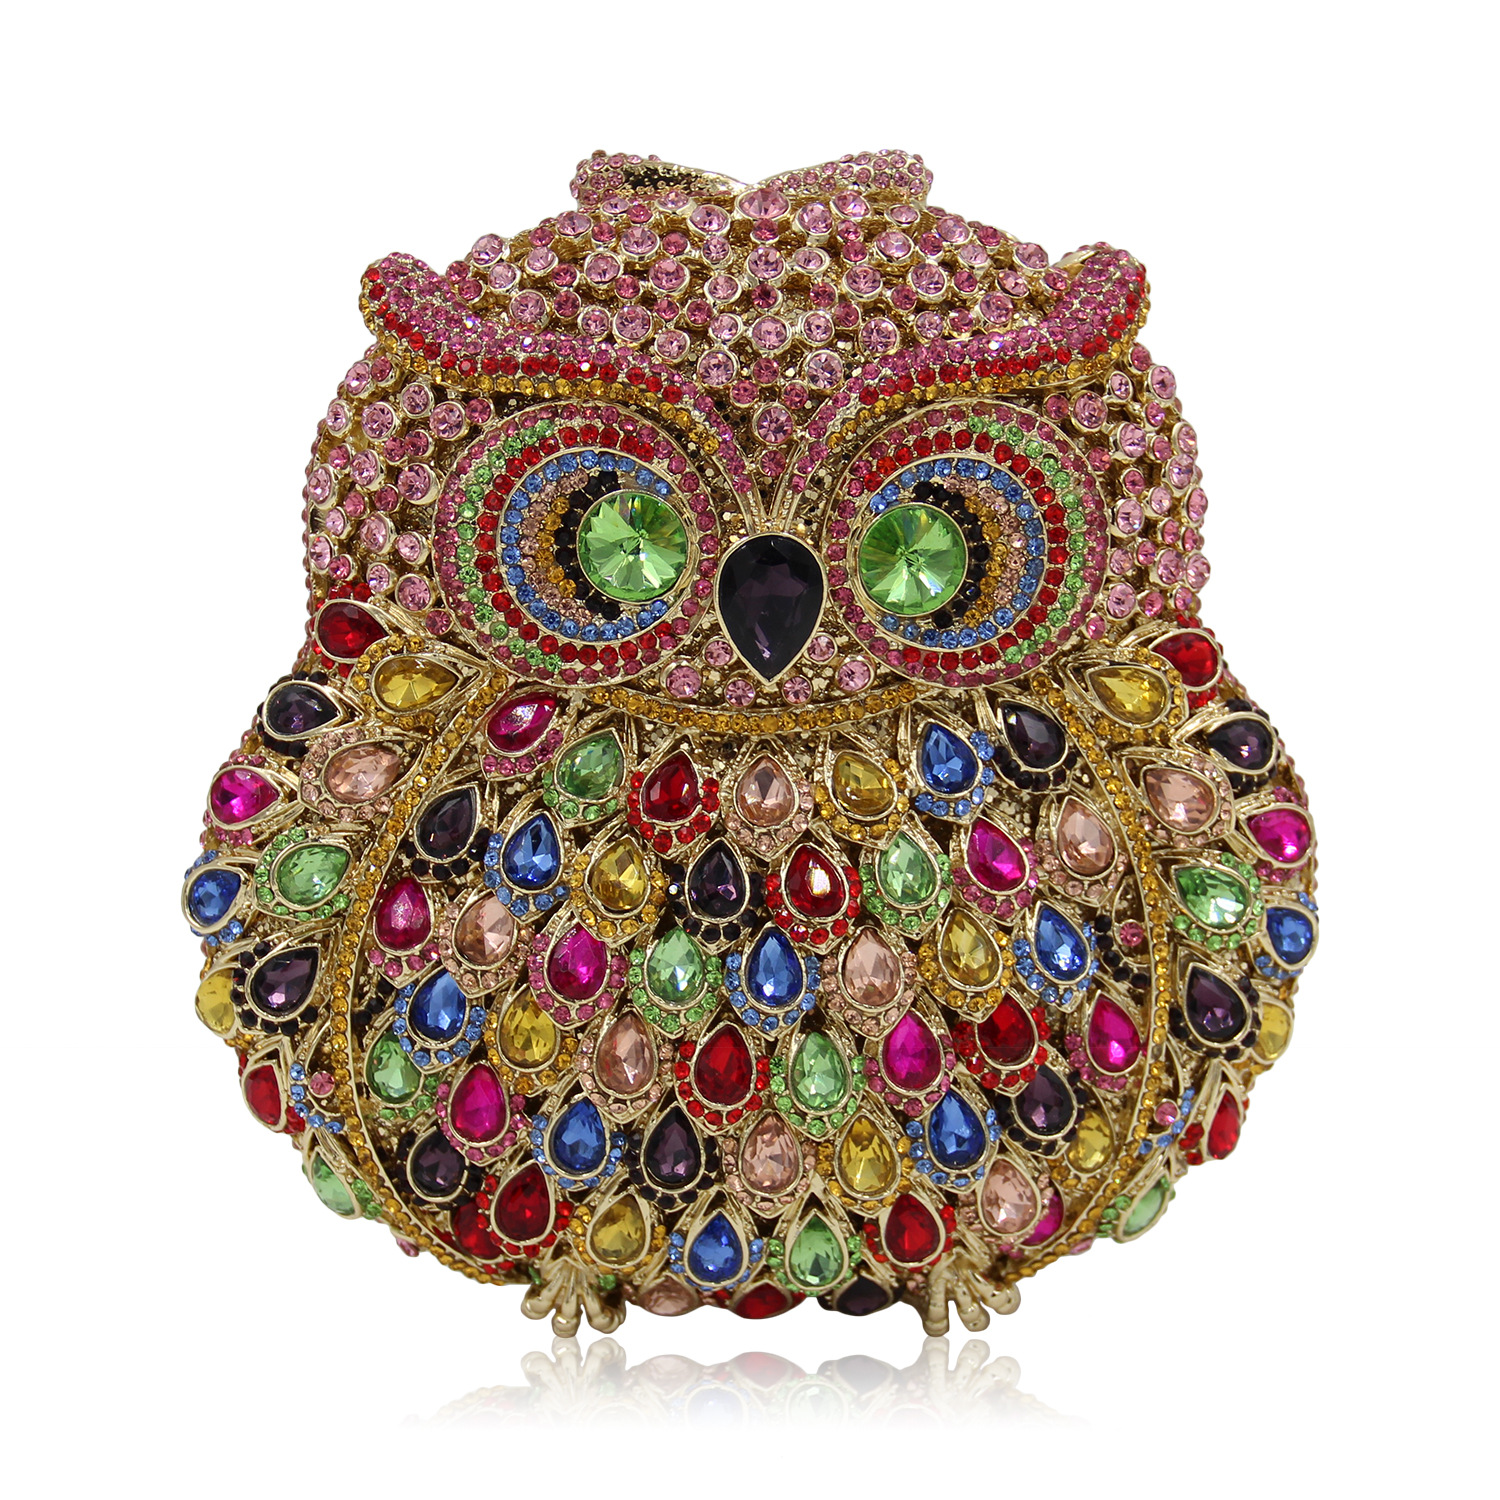 Luxury Brand Rhinestone Evening Bags Women Owl Crystal Clutch Bag Female Fashion Party Clutches Animal Printed Handbags Purses 2017 luxury flower evening bag handmade diamond clutch bags women crystal butterfly handbags party velvet clutches purses jxy784